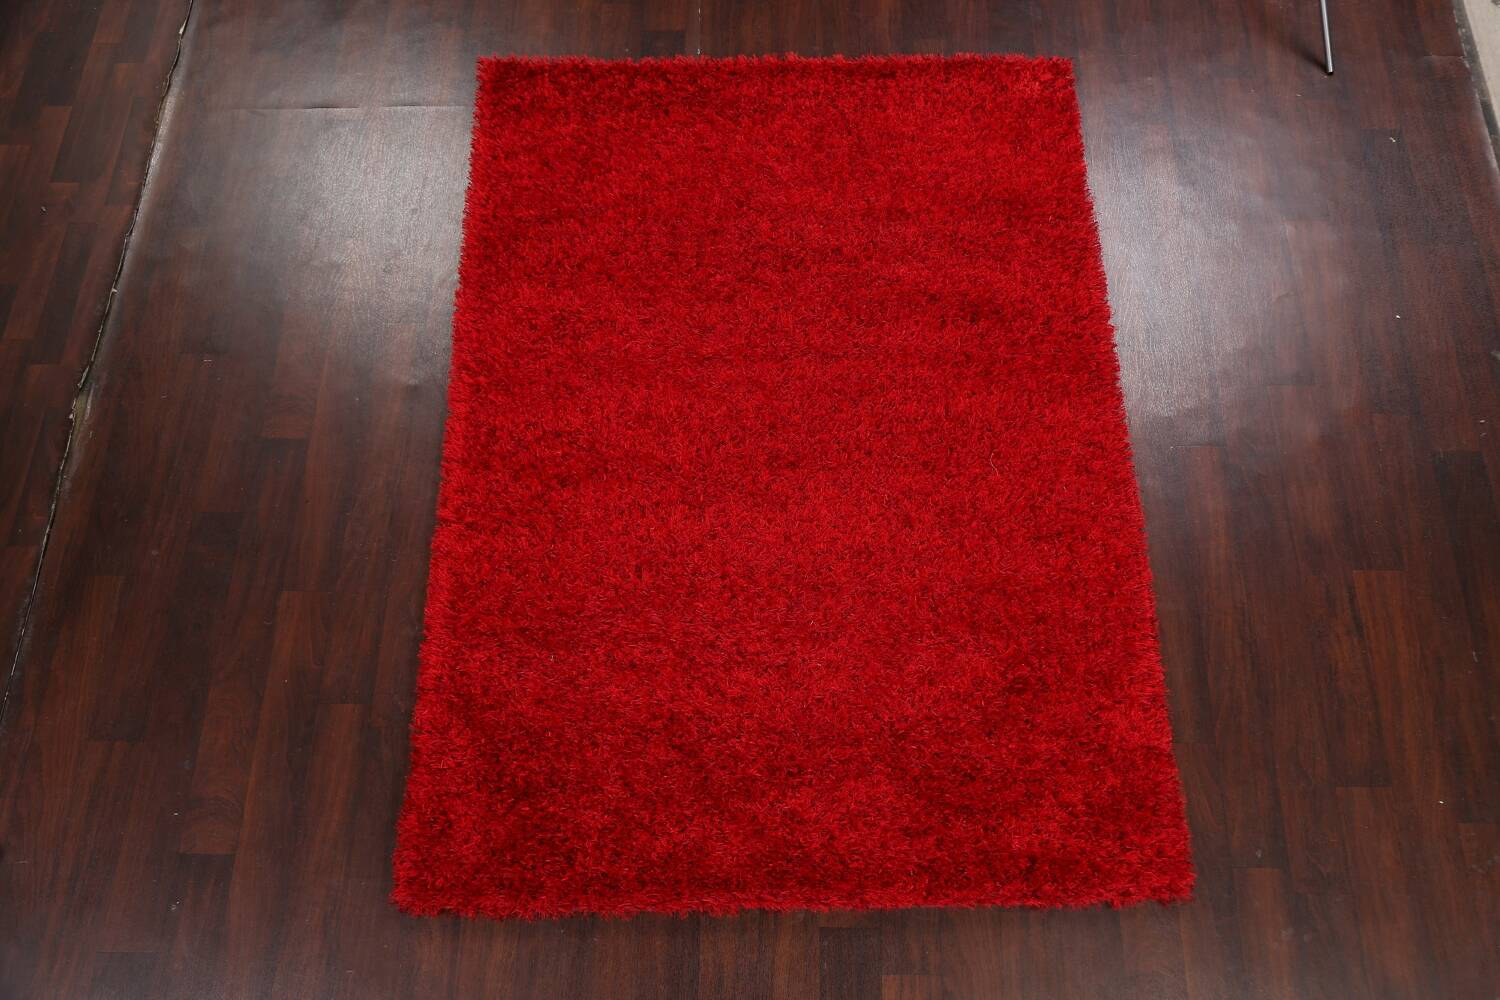 Red Plush Shaggy Area Rug 5x7 image 12